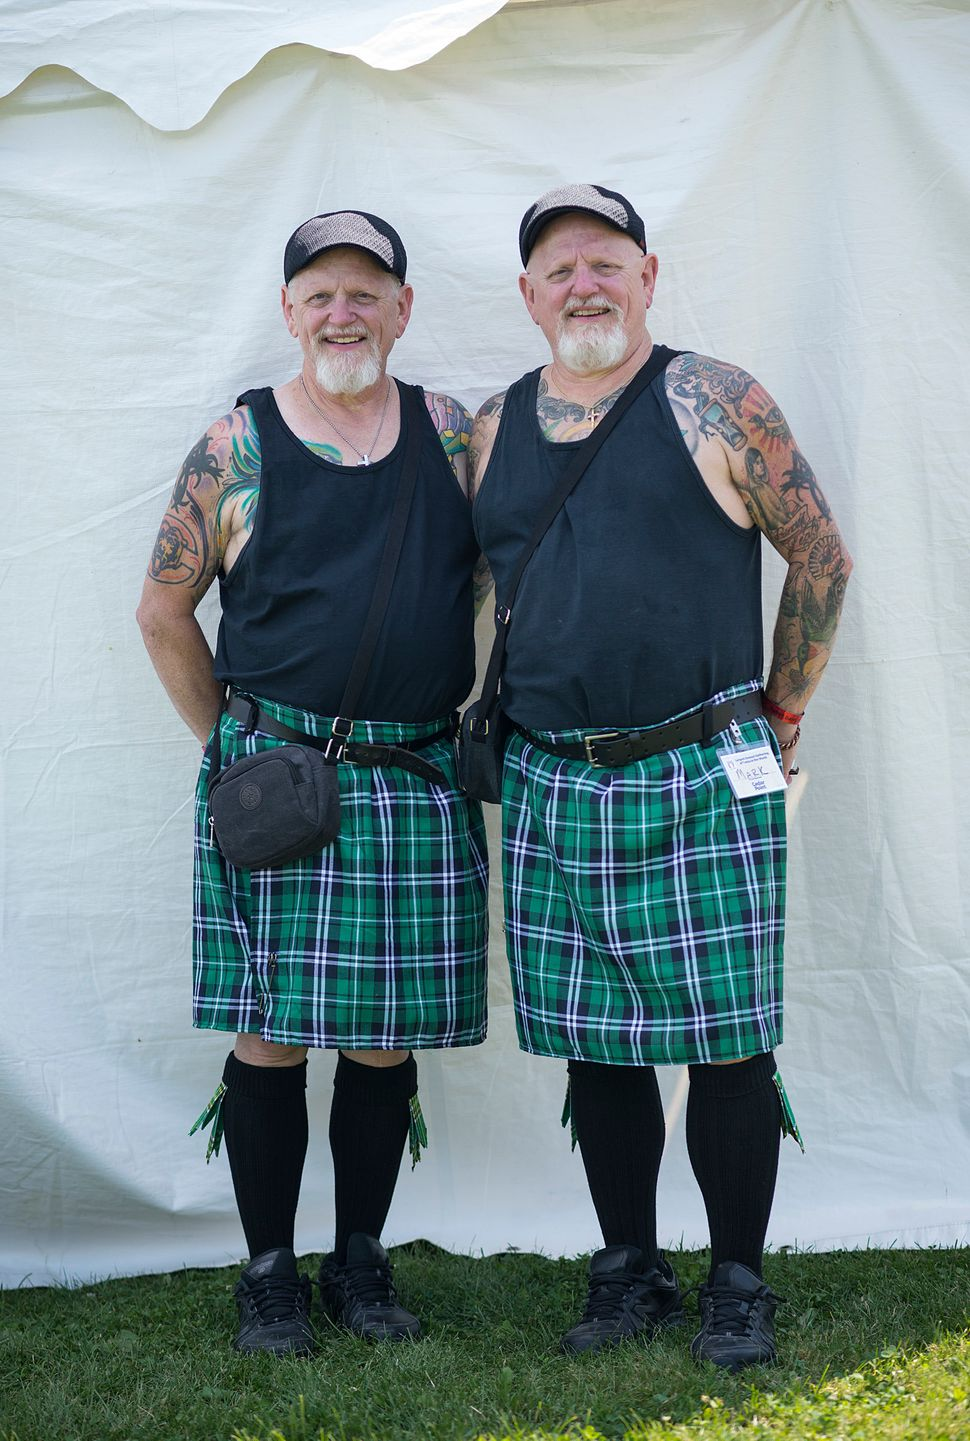 Mike(left) and Mark Smith show offtheir Scottish background.